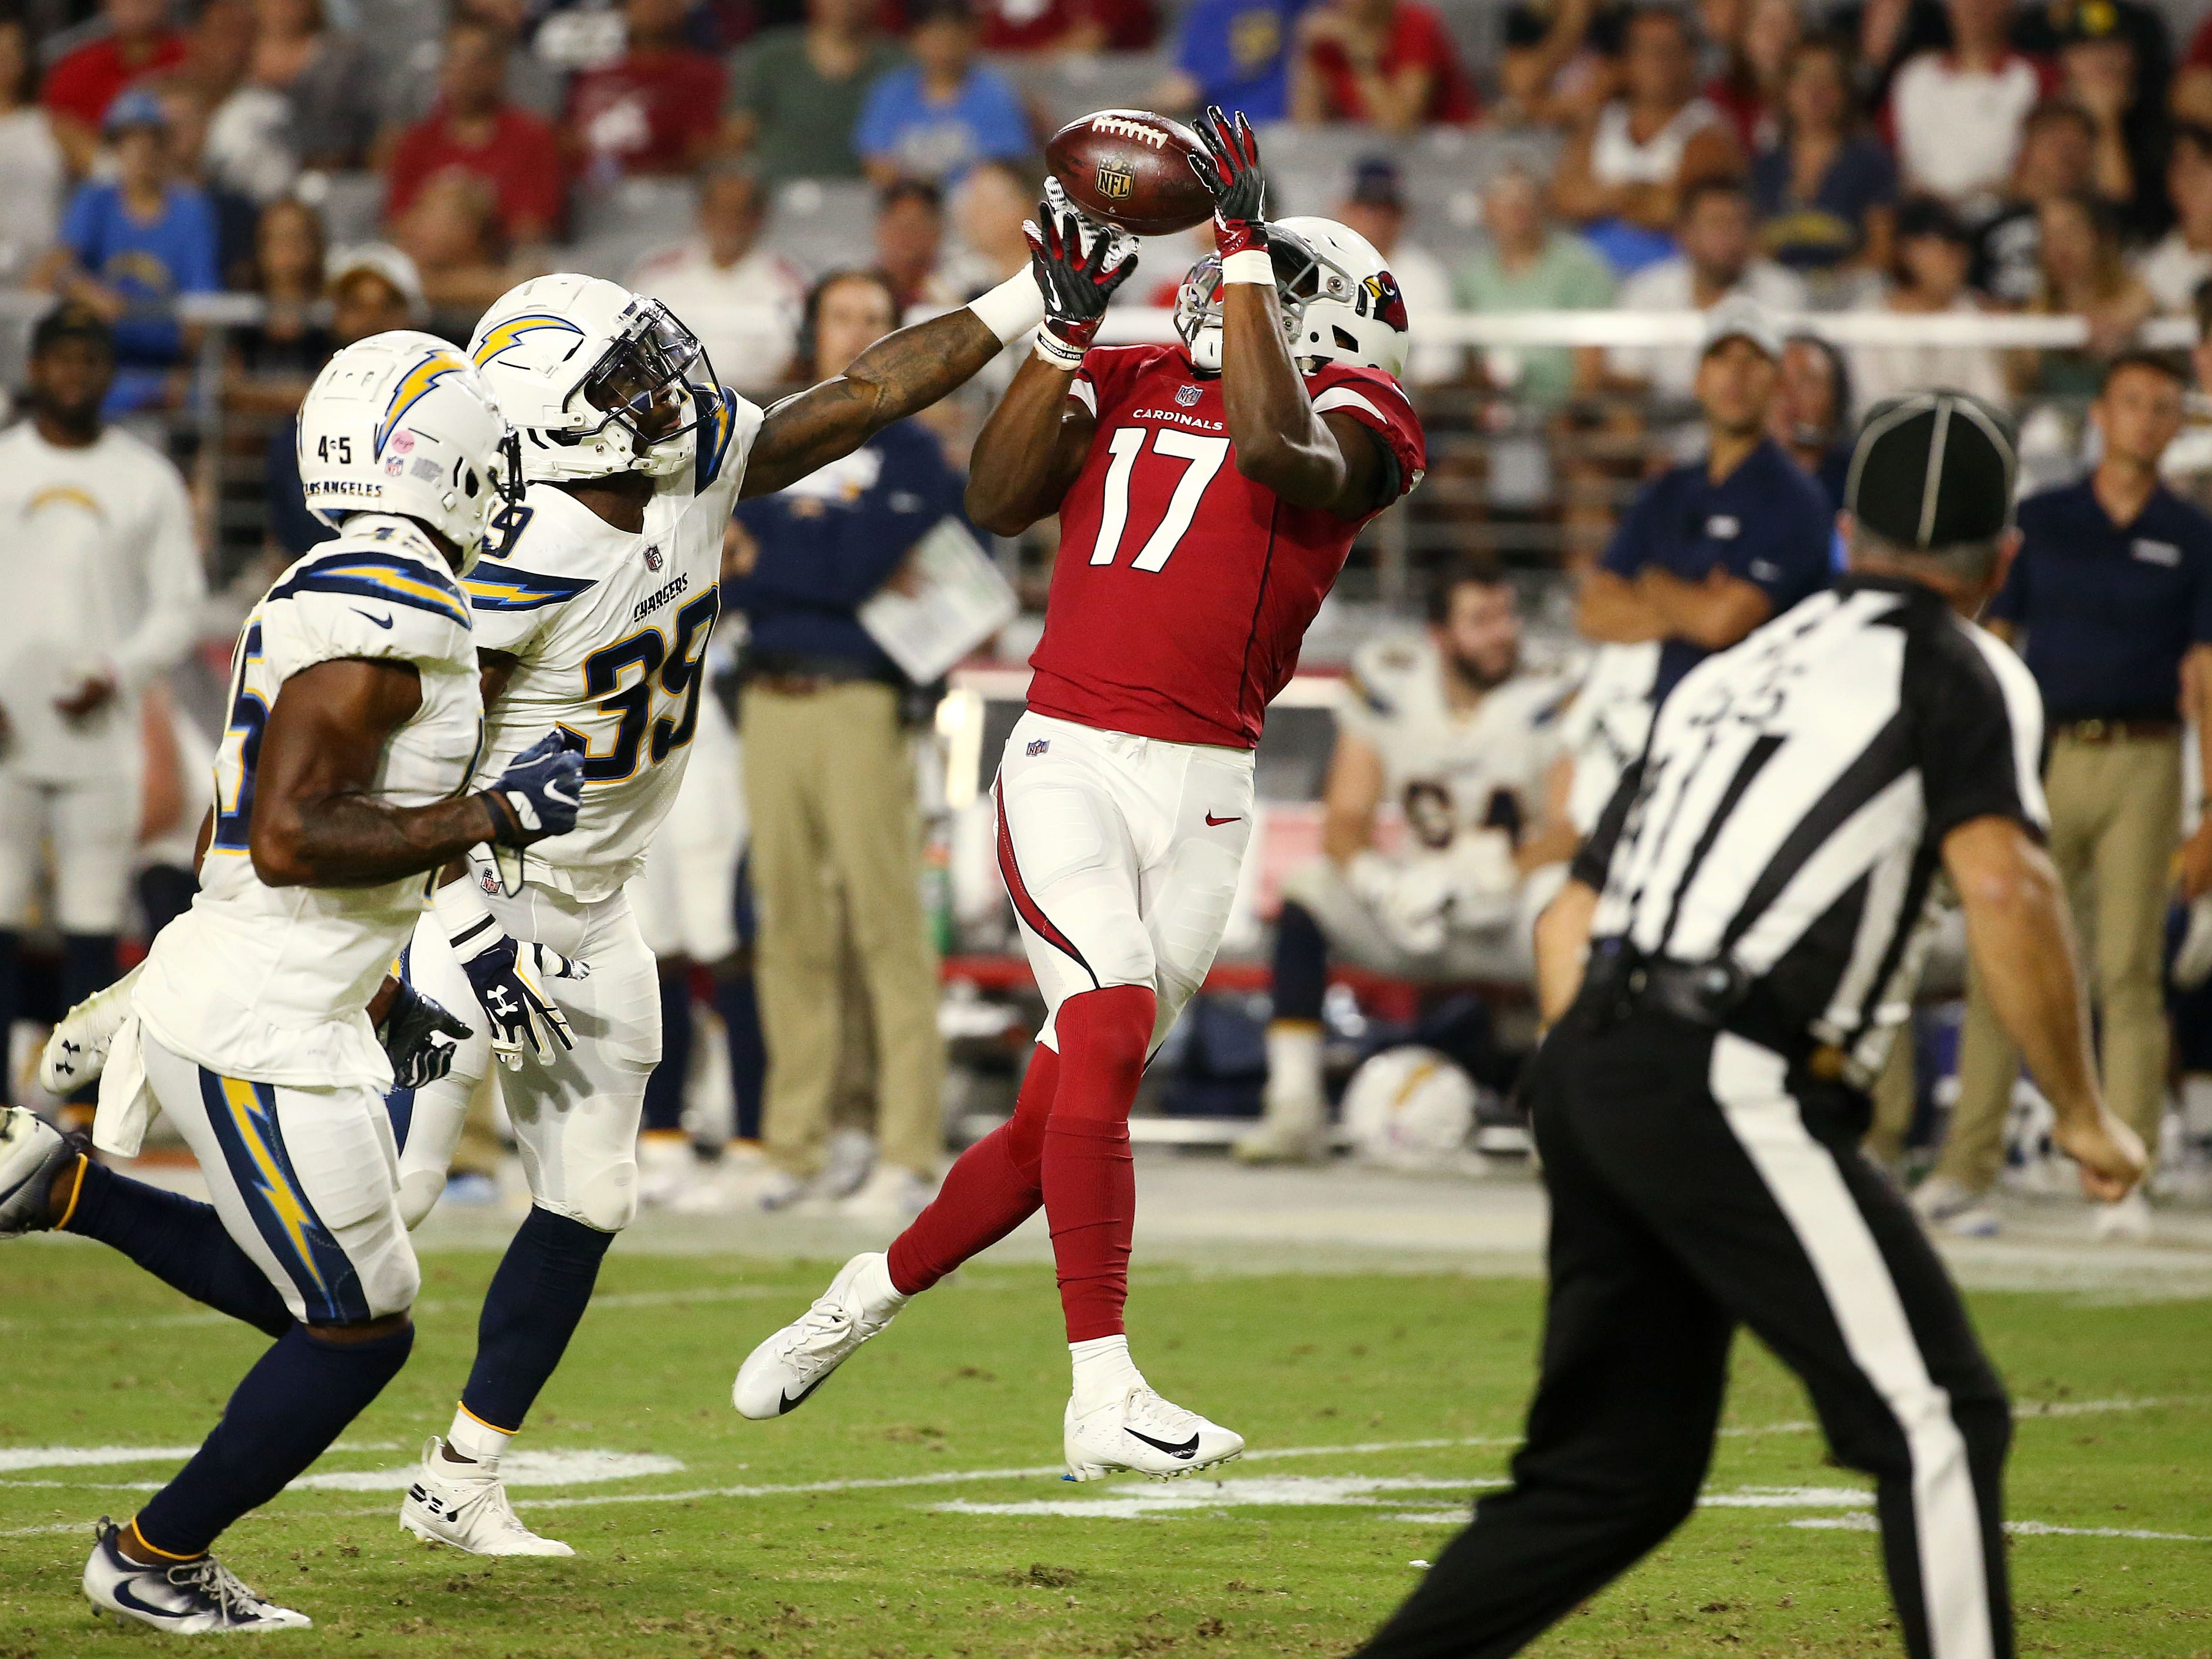 Arizona Cardinals wide receiver Jalen Tolliver makes a catch against the L.A. Chargers in the second half during a preseason NFL football game on Aug. 11, 2018 at University of Phoenix Stadium in Glendale, Ariz.